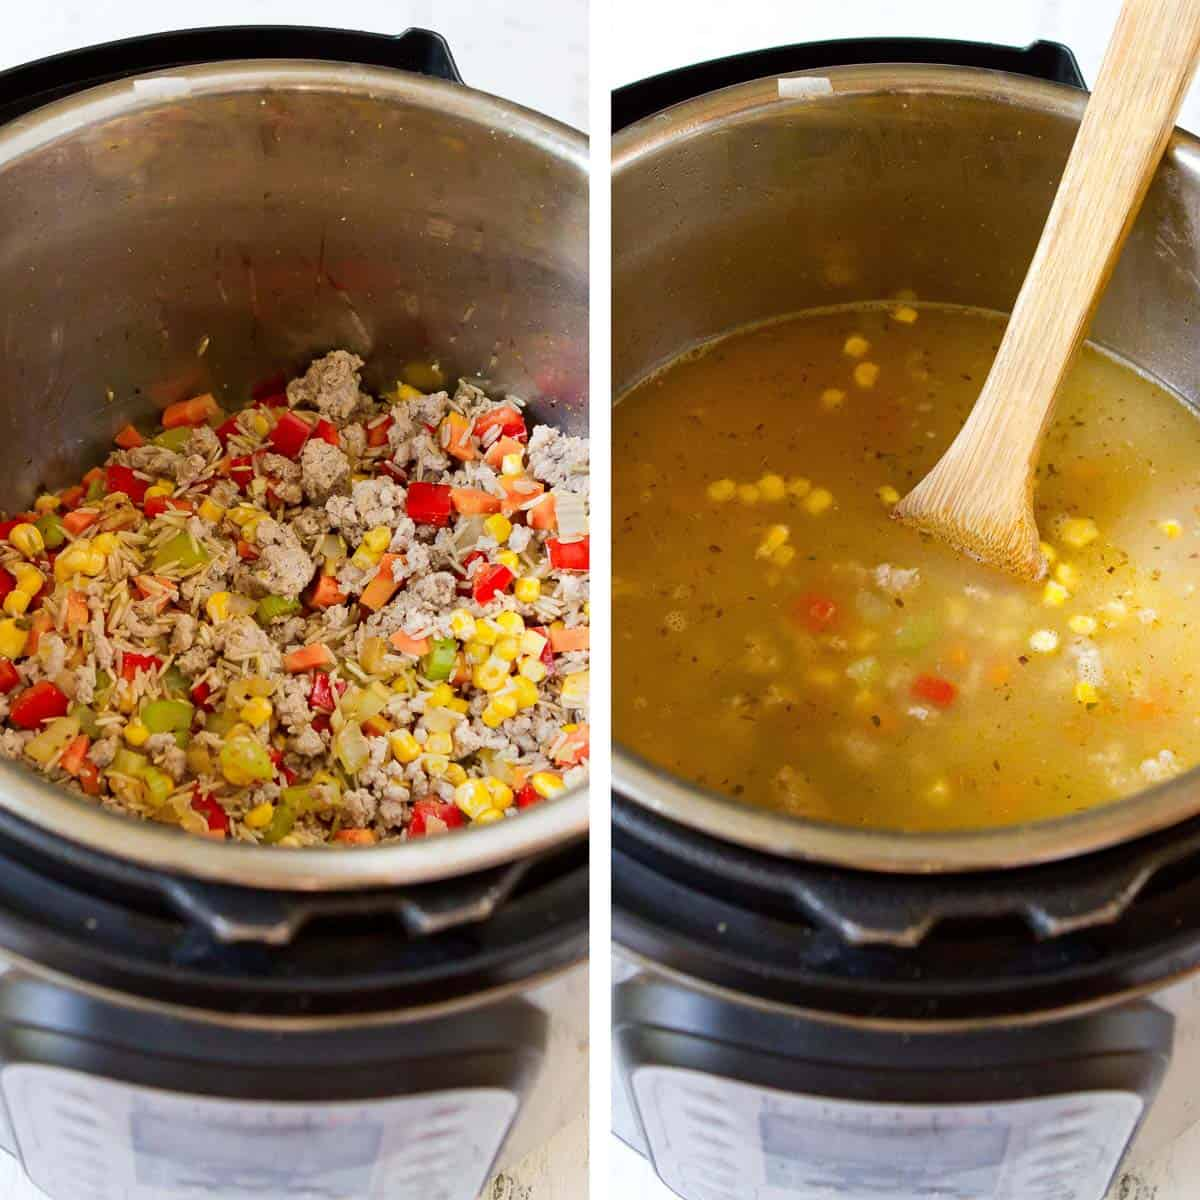 Ground turkey and vegetable mixture, plus broth mixture, in an Instant Pot.